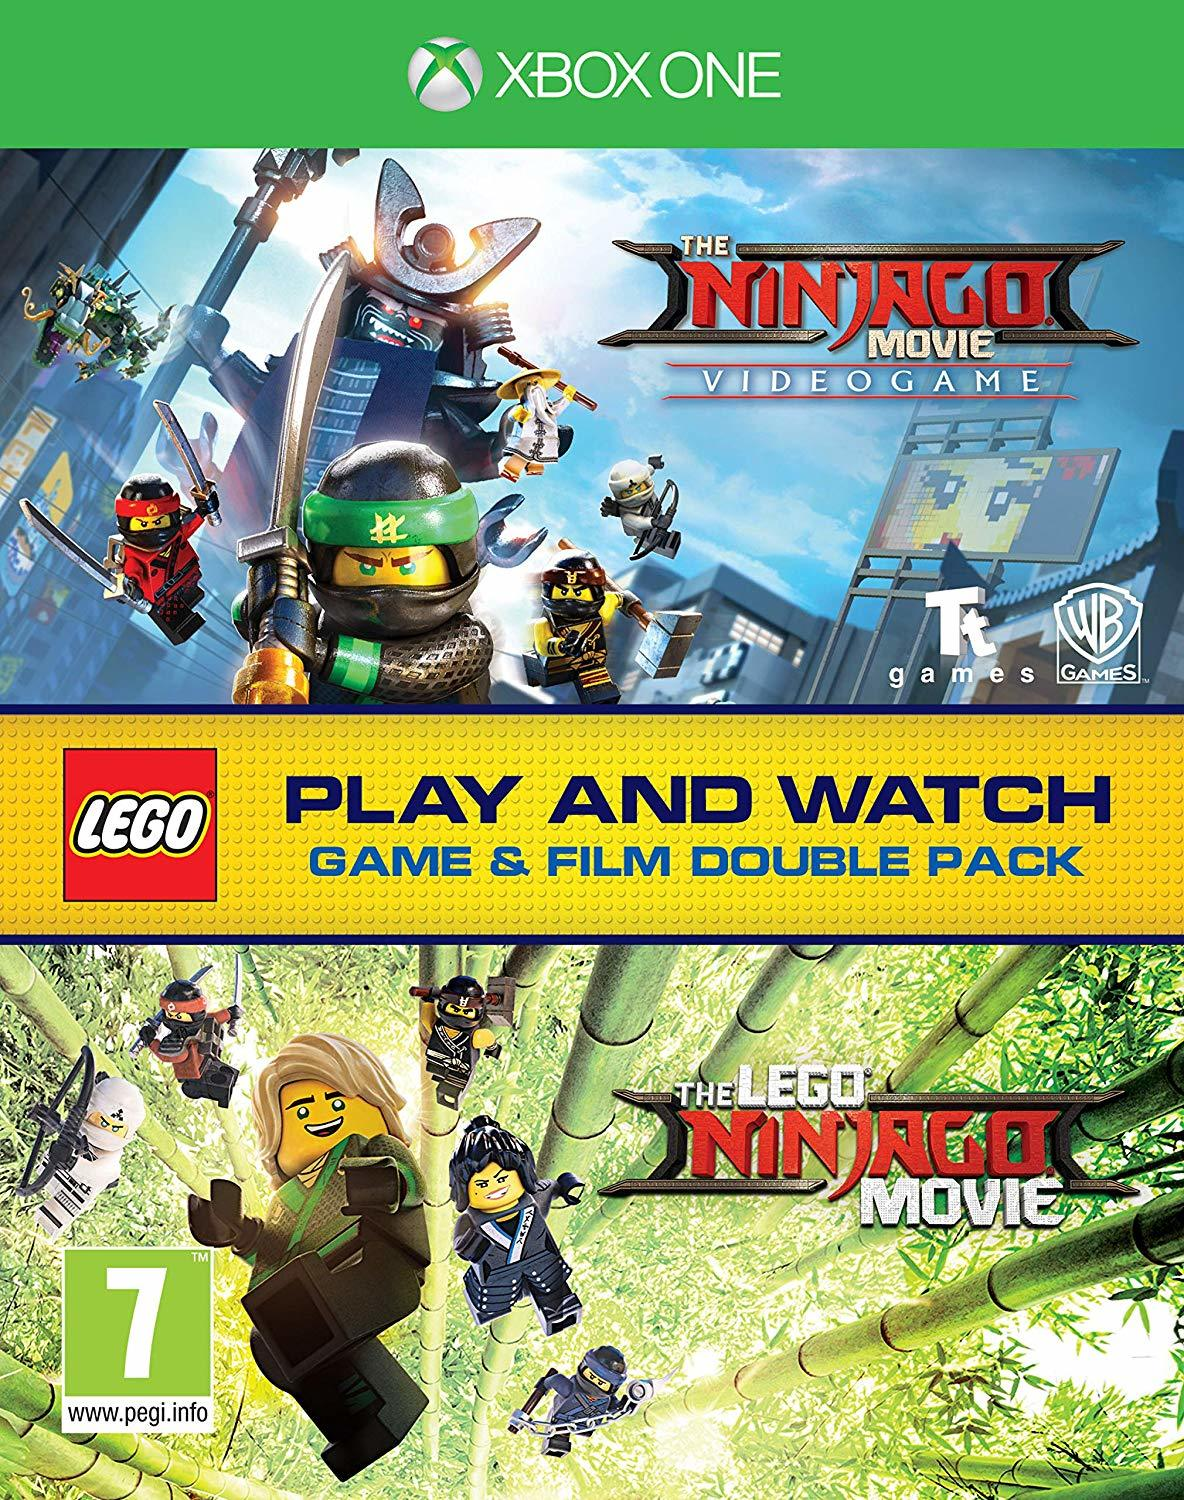 LEGO Ninjago Game & Film Double Pack - Xbox One